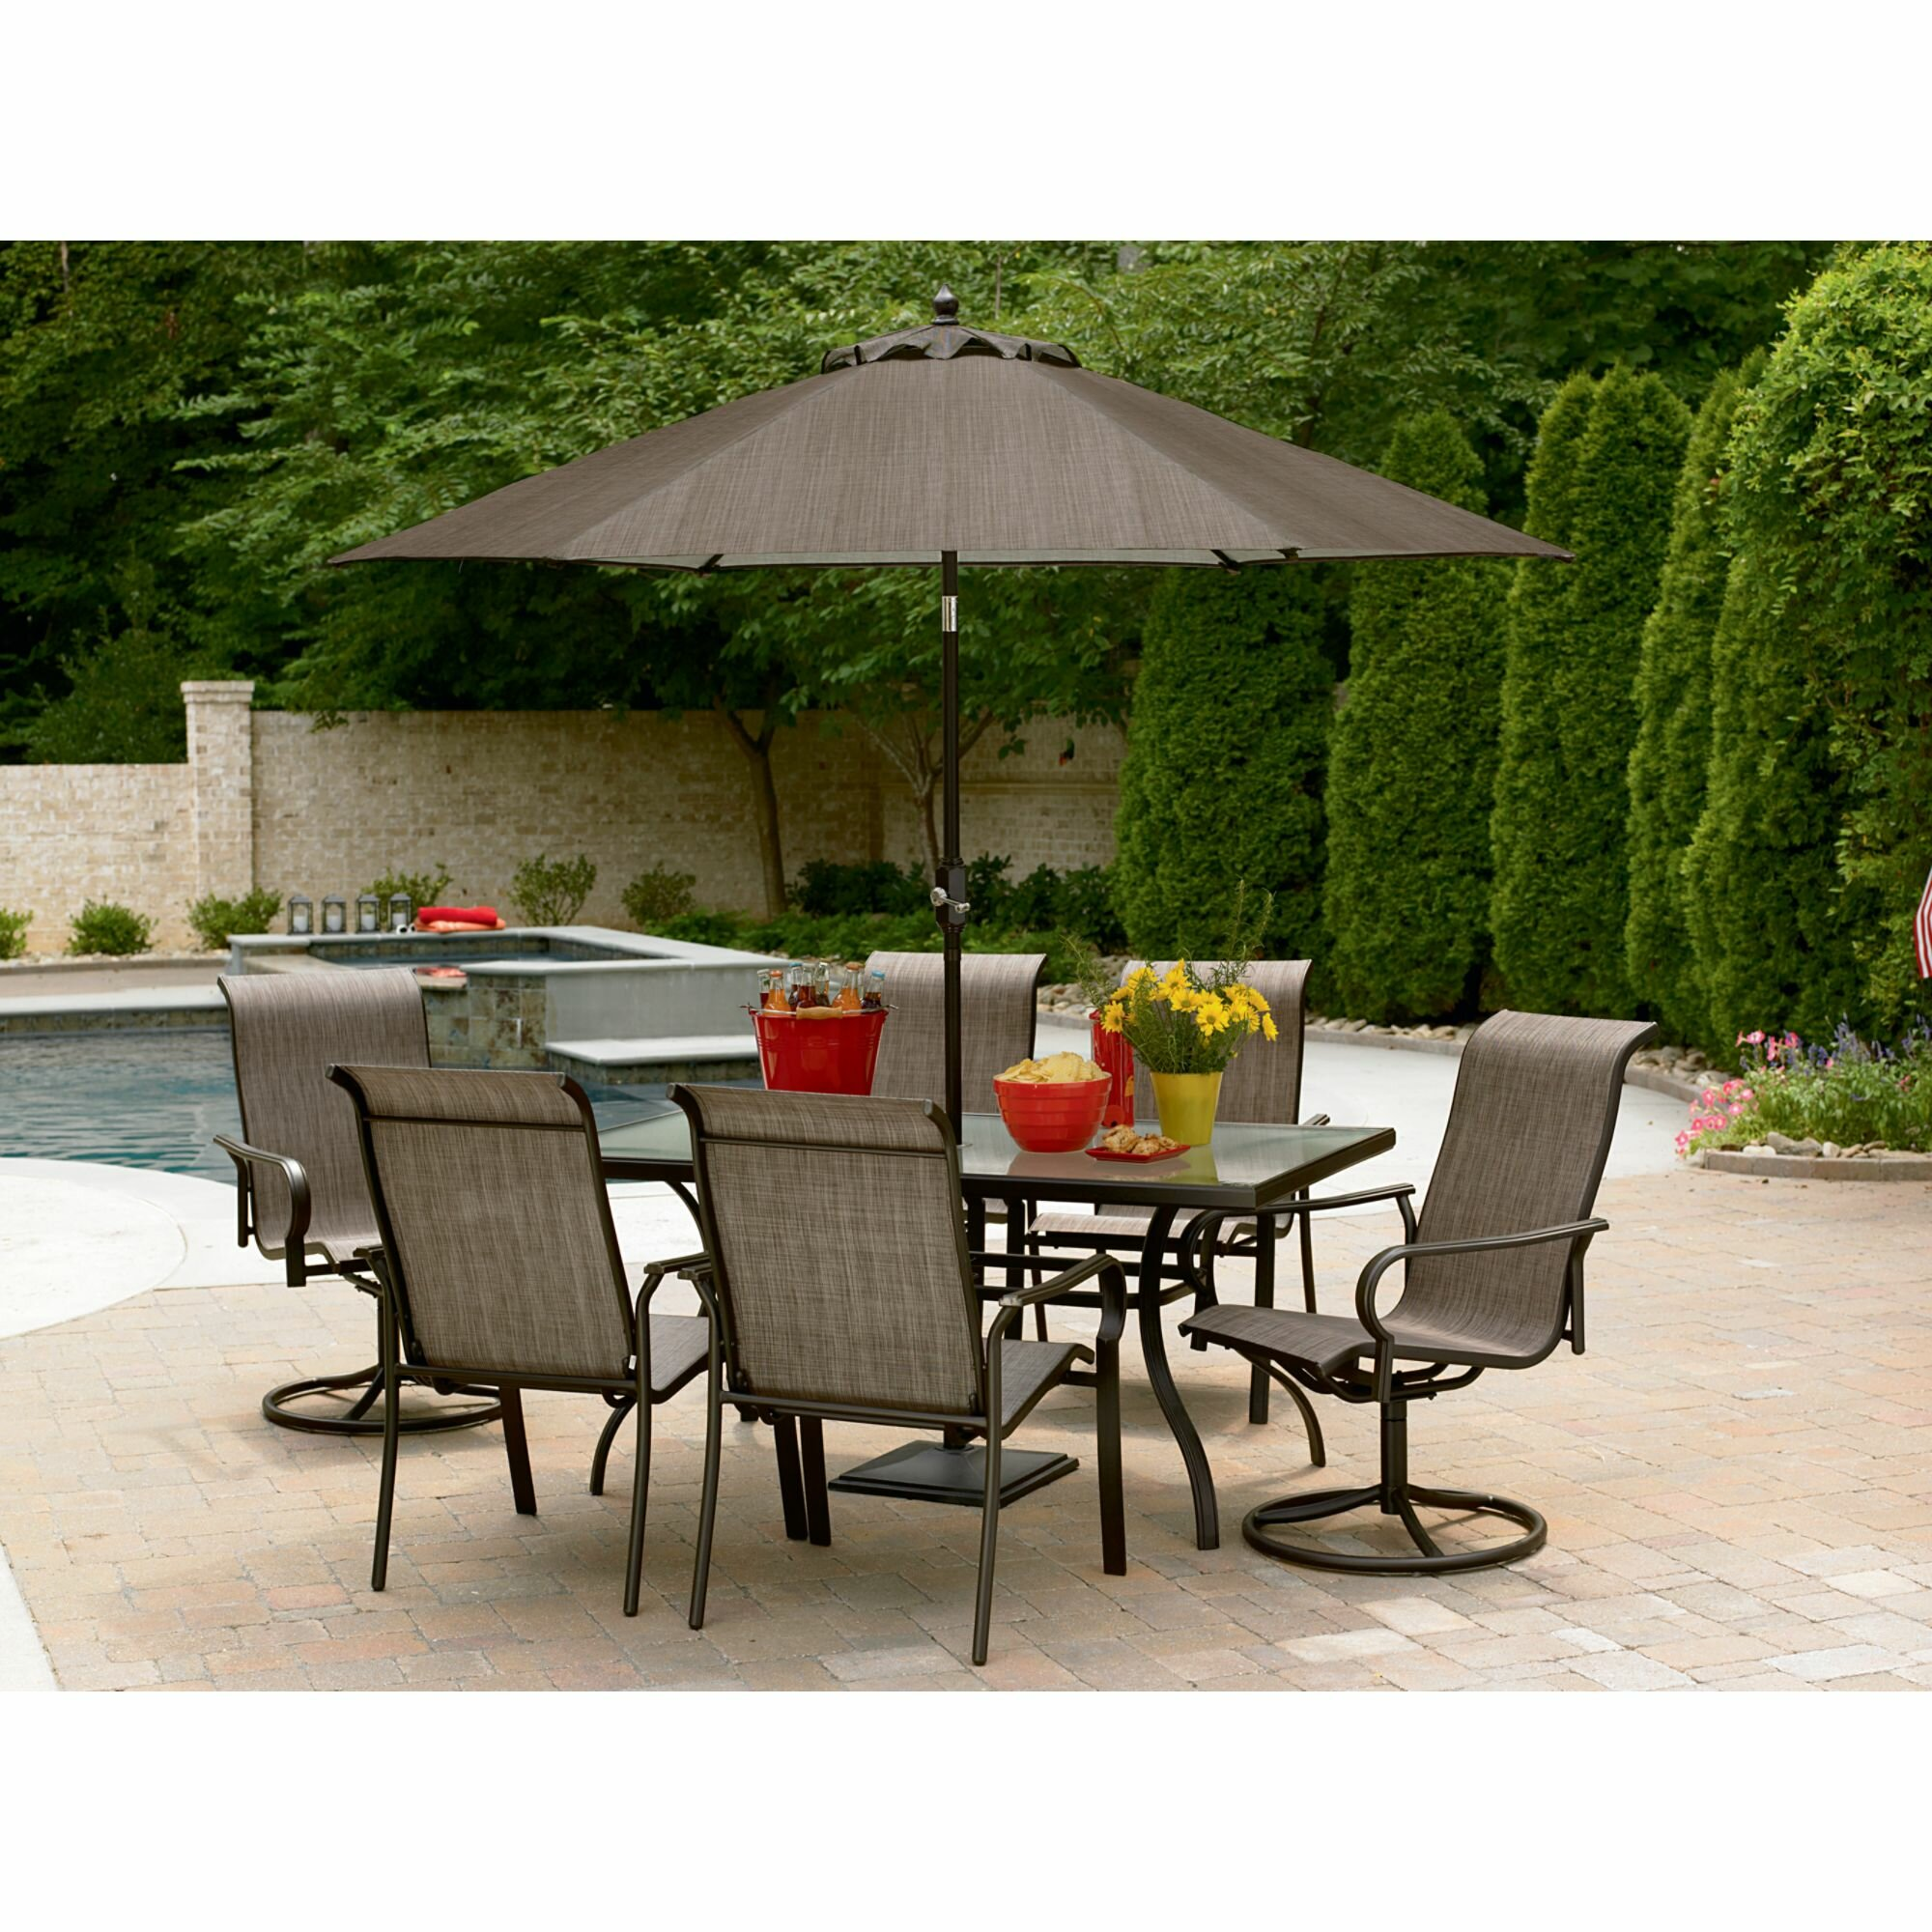 Sears Outlet Patio Furniture | Sears Outlet Patio Furniture | Sear Outdoor Furniture